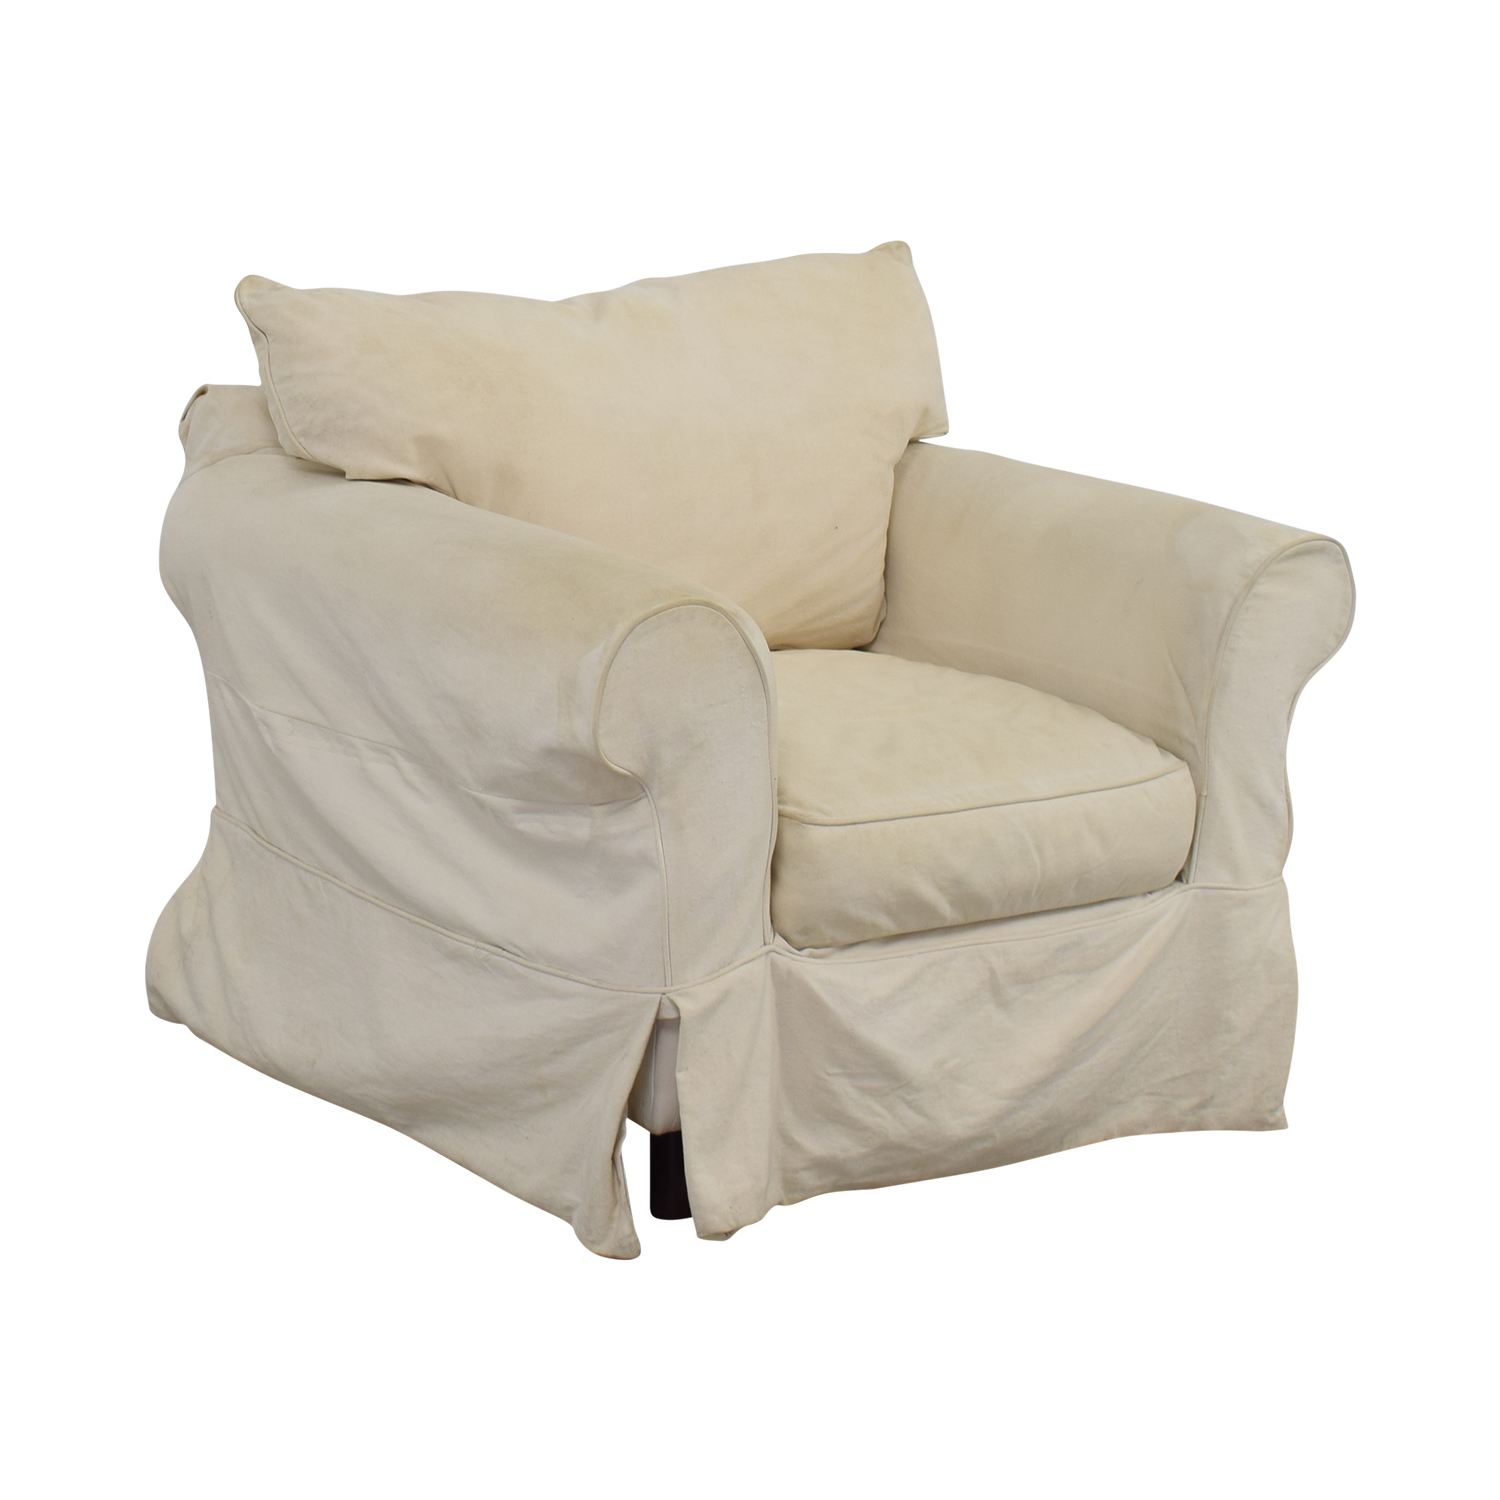 ... Jennifer Furniture Cream Skirted Sofa Chair / Chairs ...